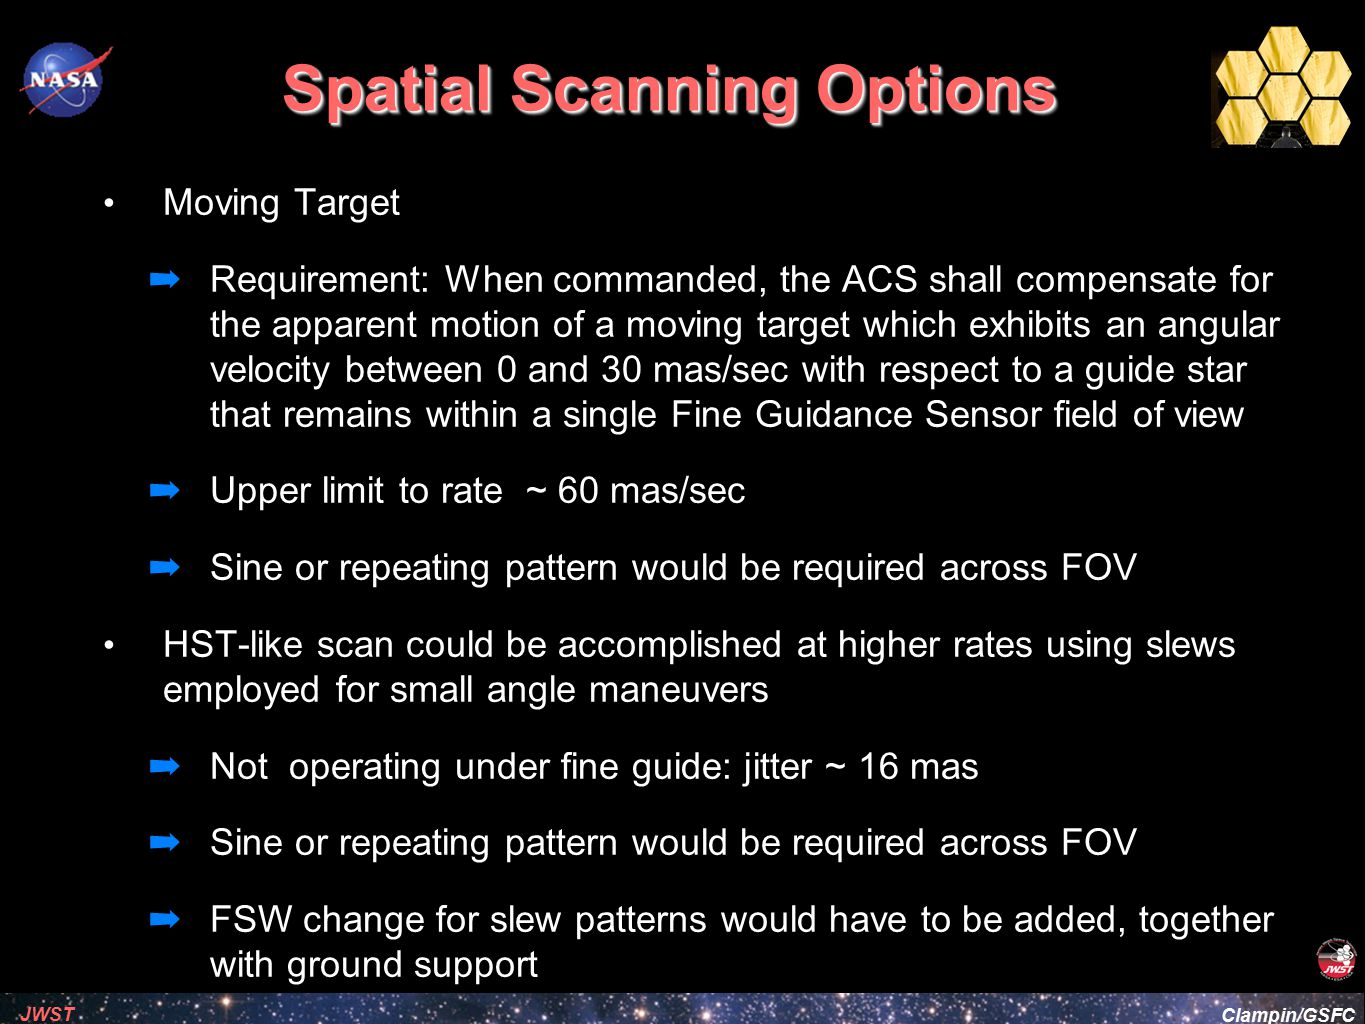 Spatial Scanning Options